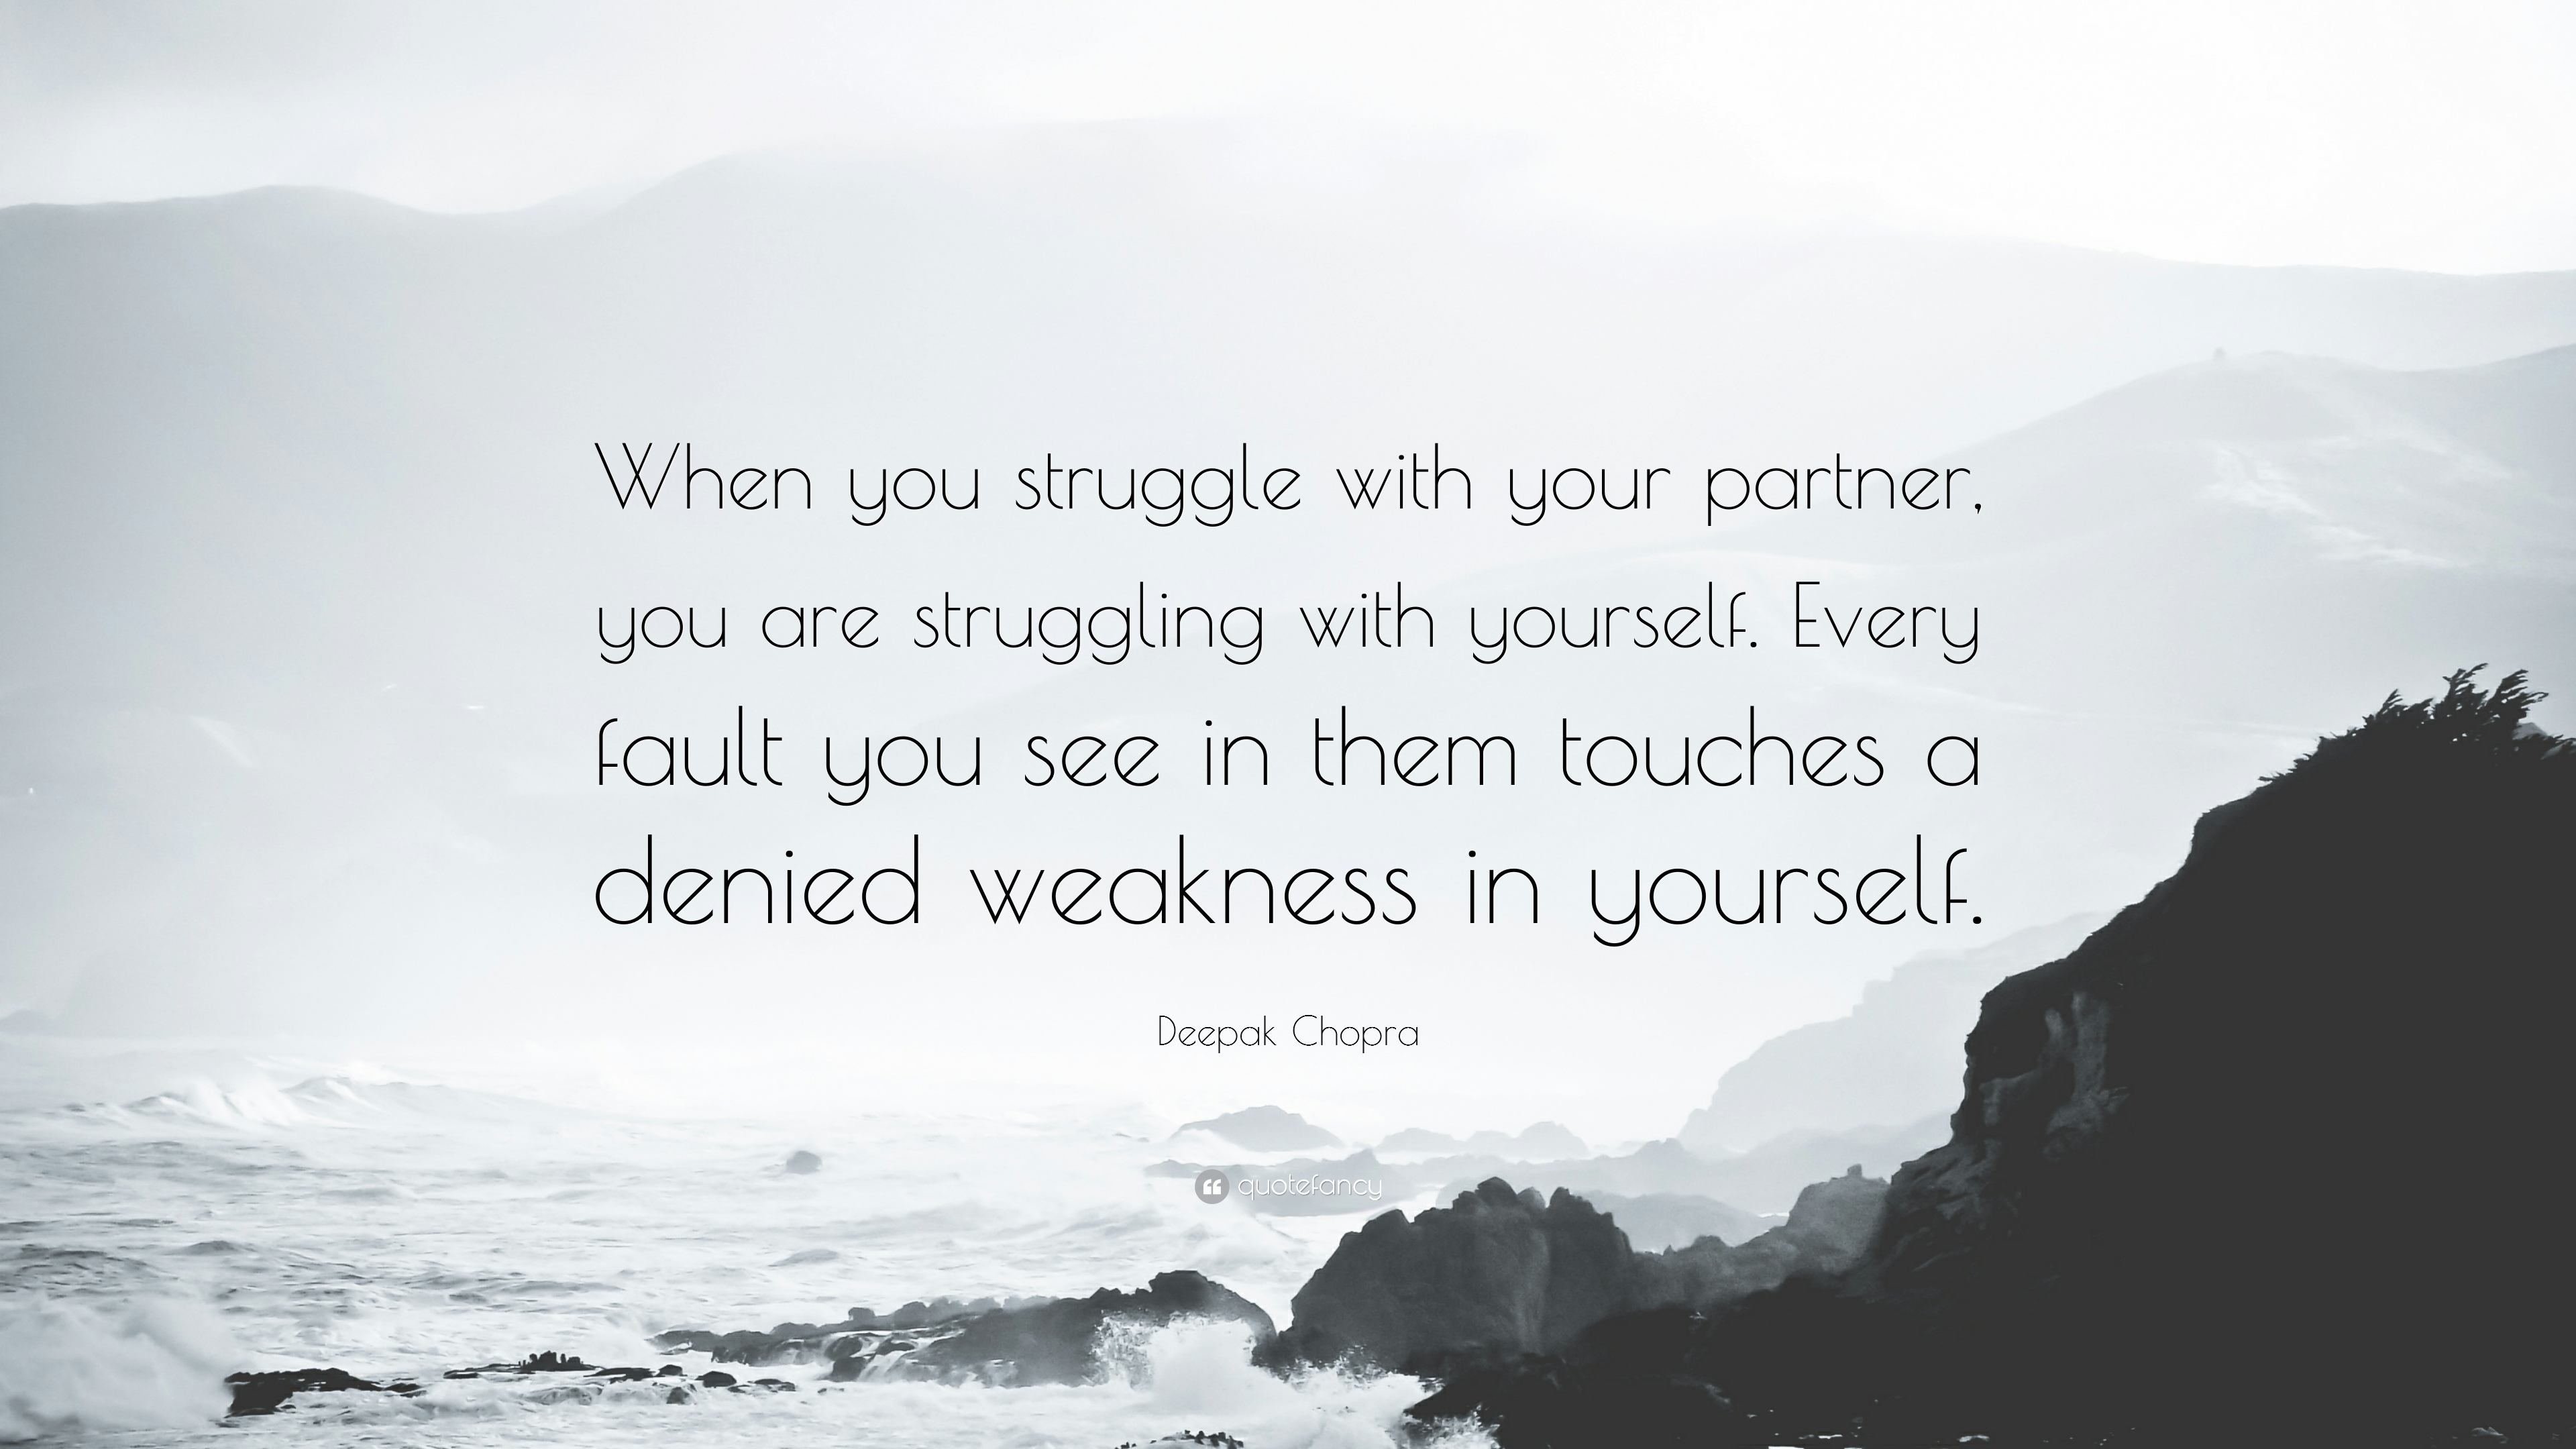 deepak chopra quote when you struggle with your partner you are